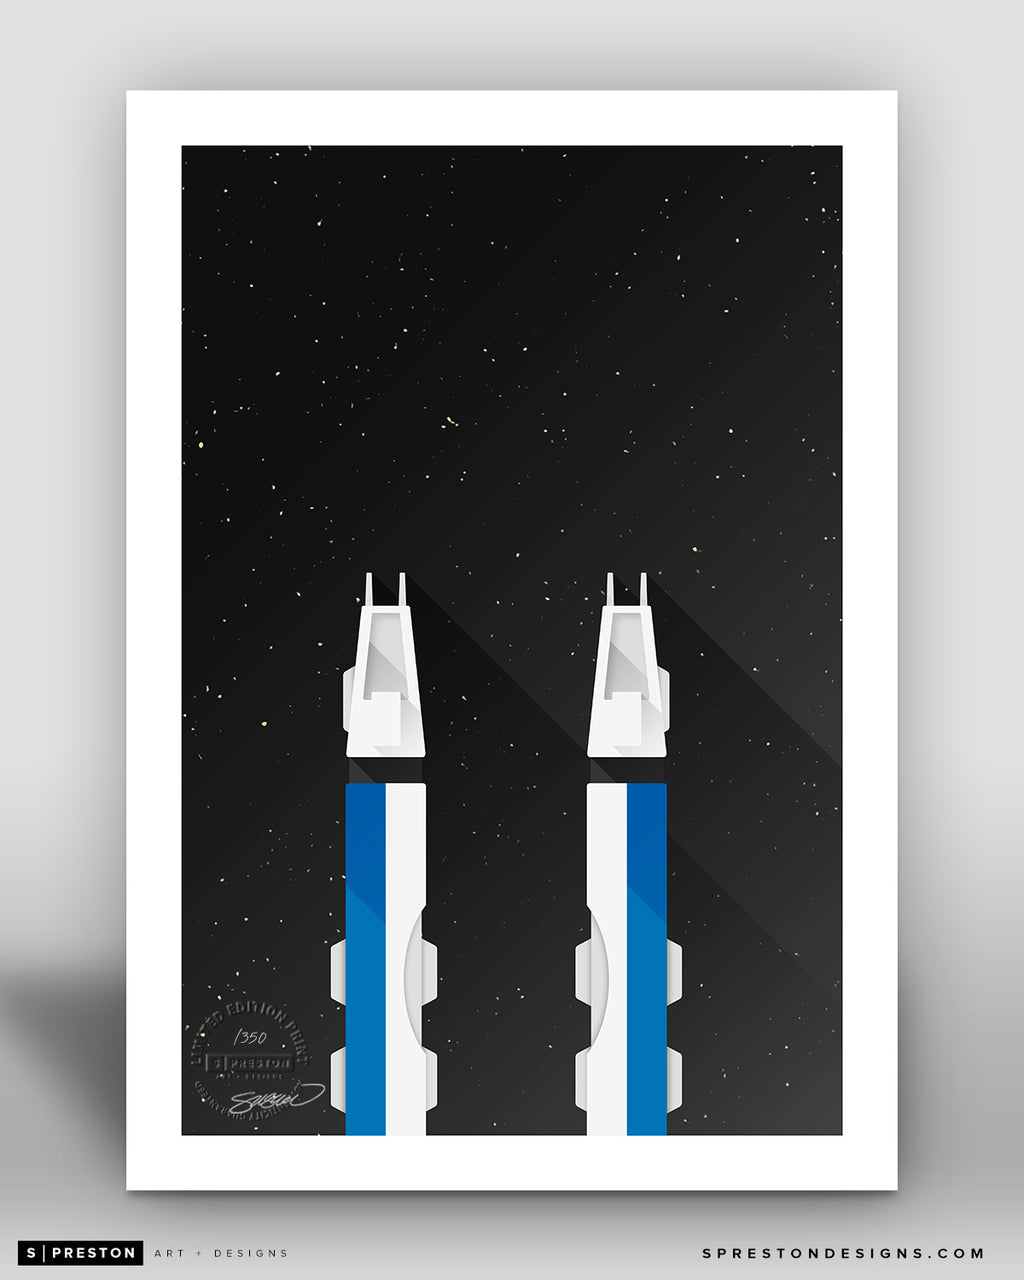 Minimalist Movies - SDF-1 - Robotech - S. Preston